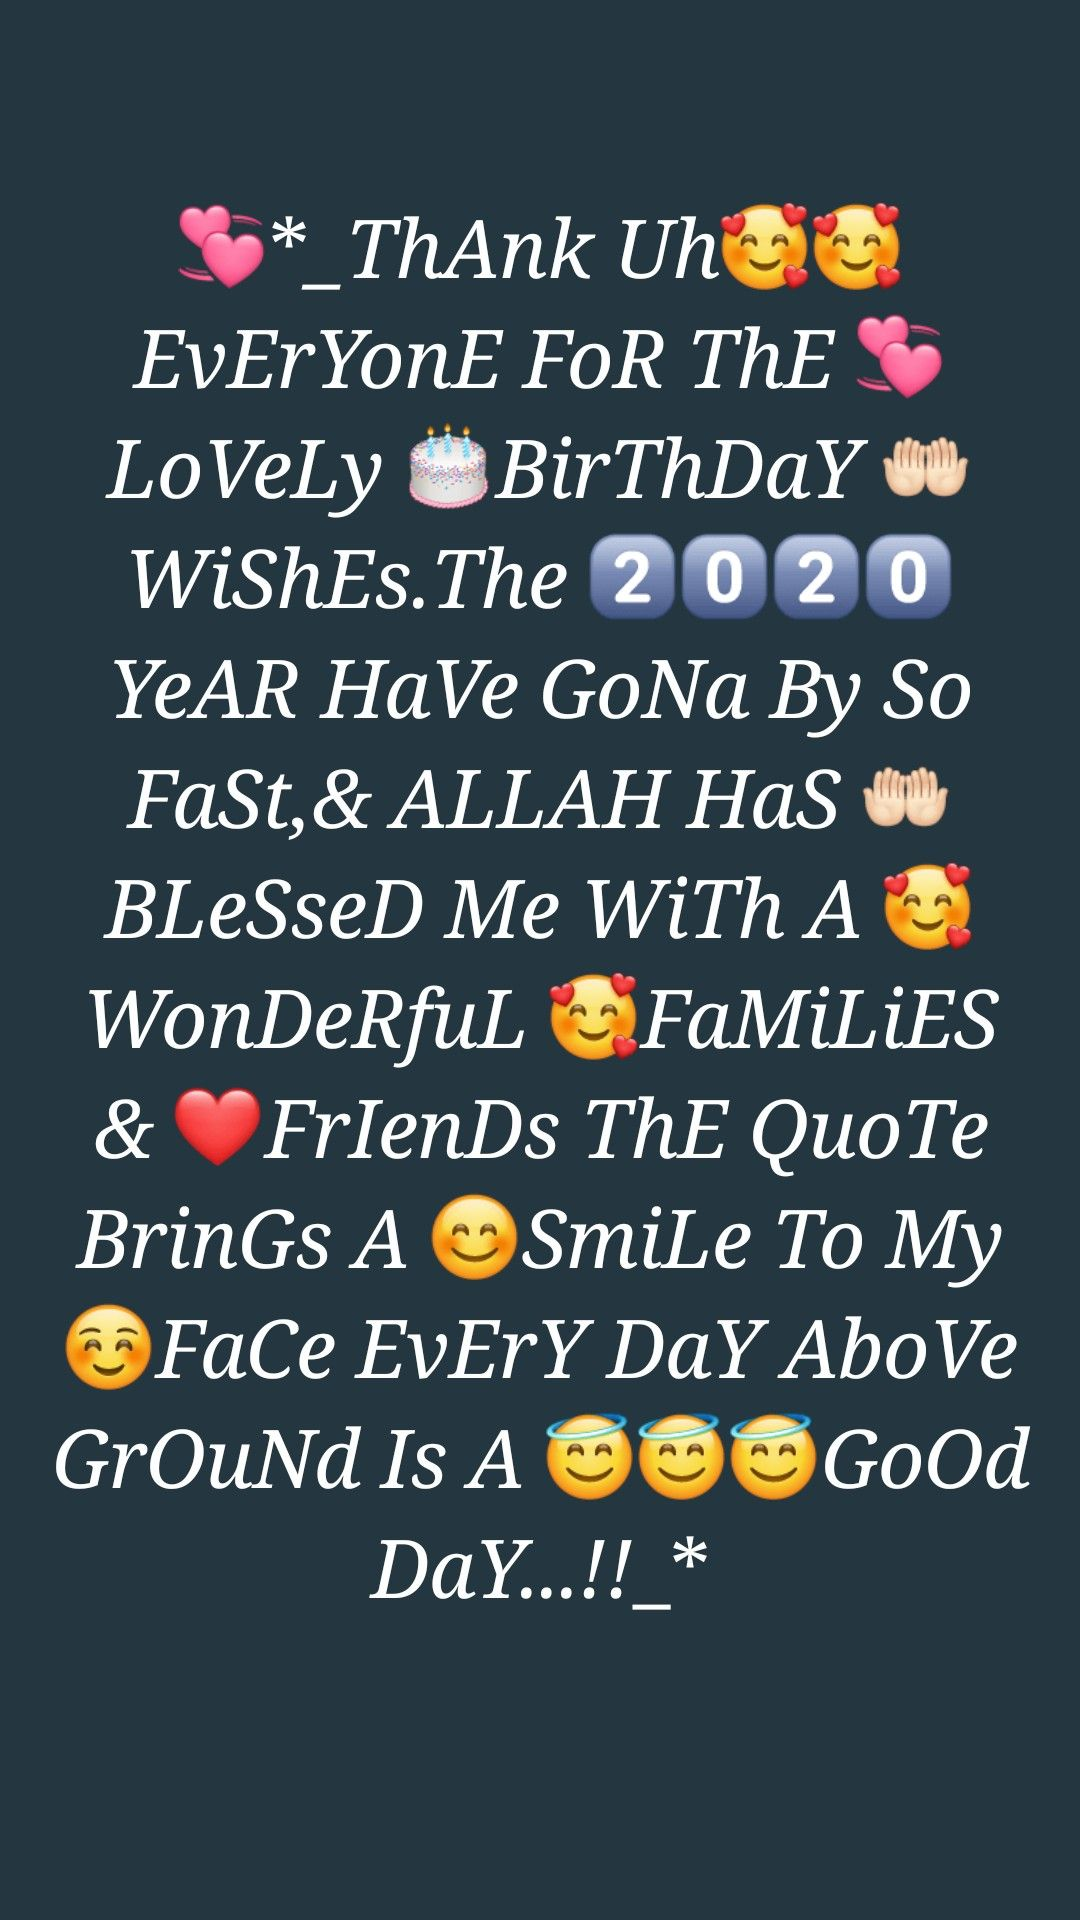 Pin By Knida On My Board Happy Birthday Quotes For Friends Happy Birthday Wishes Quotes Happy Birthday Best Friend Quotes